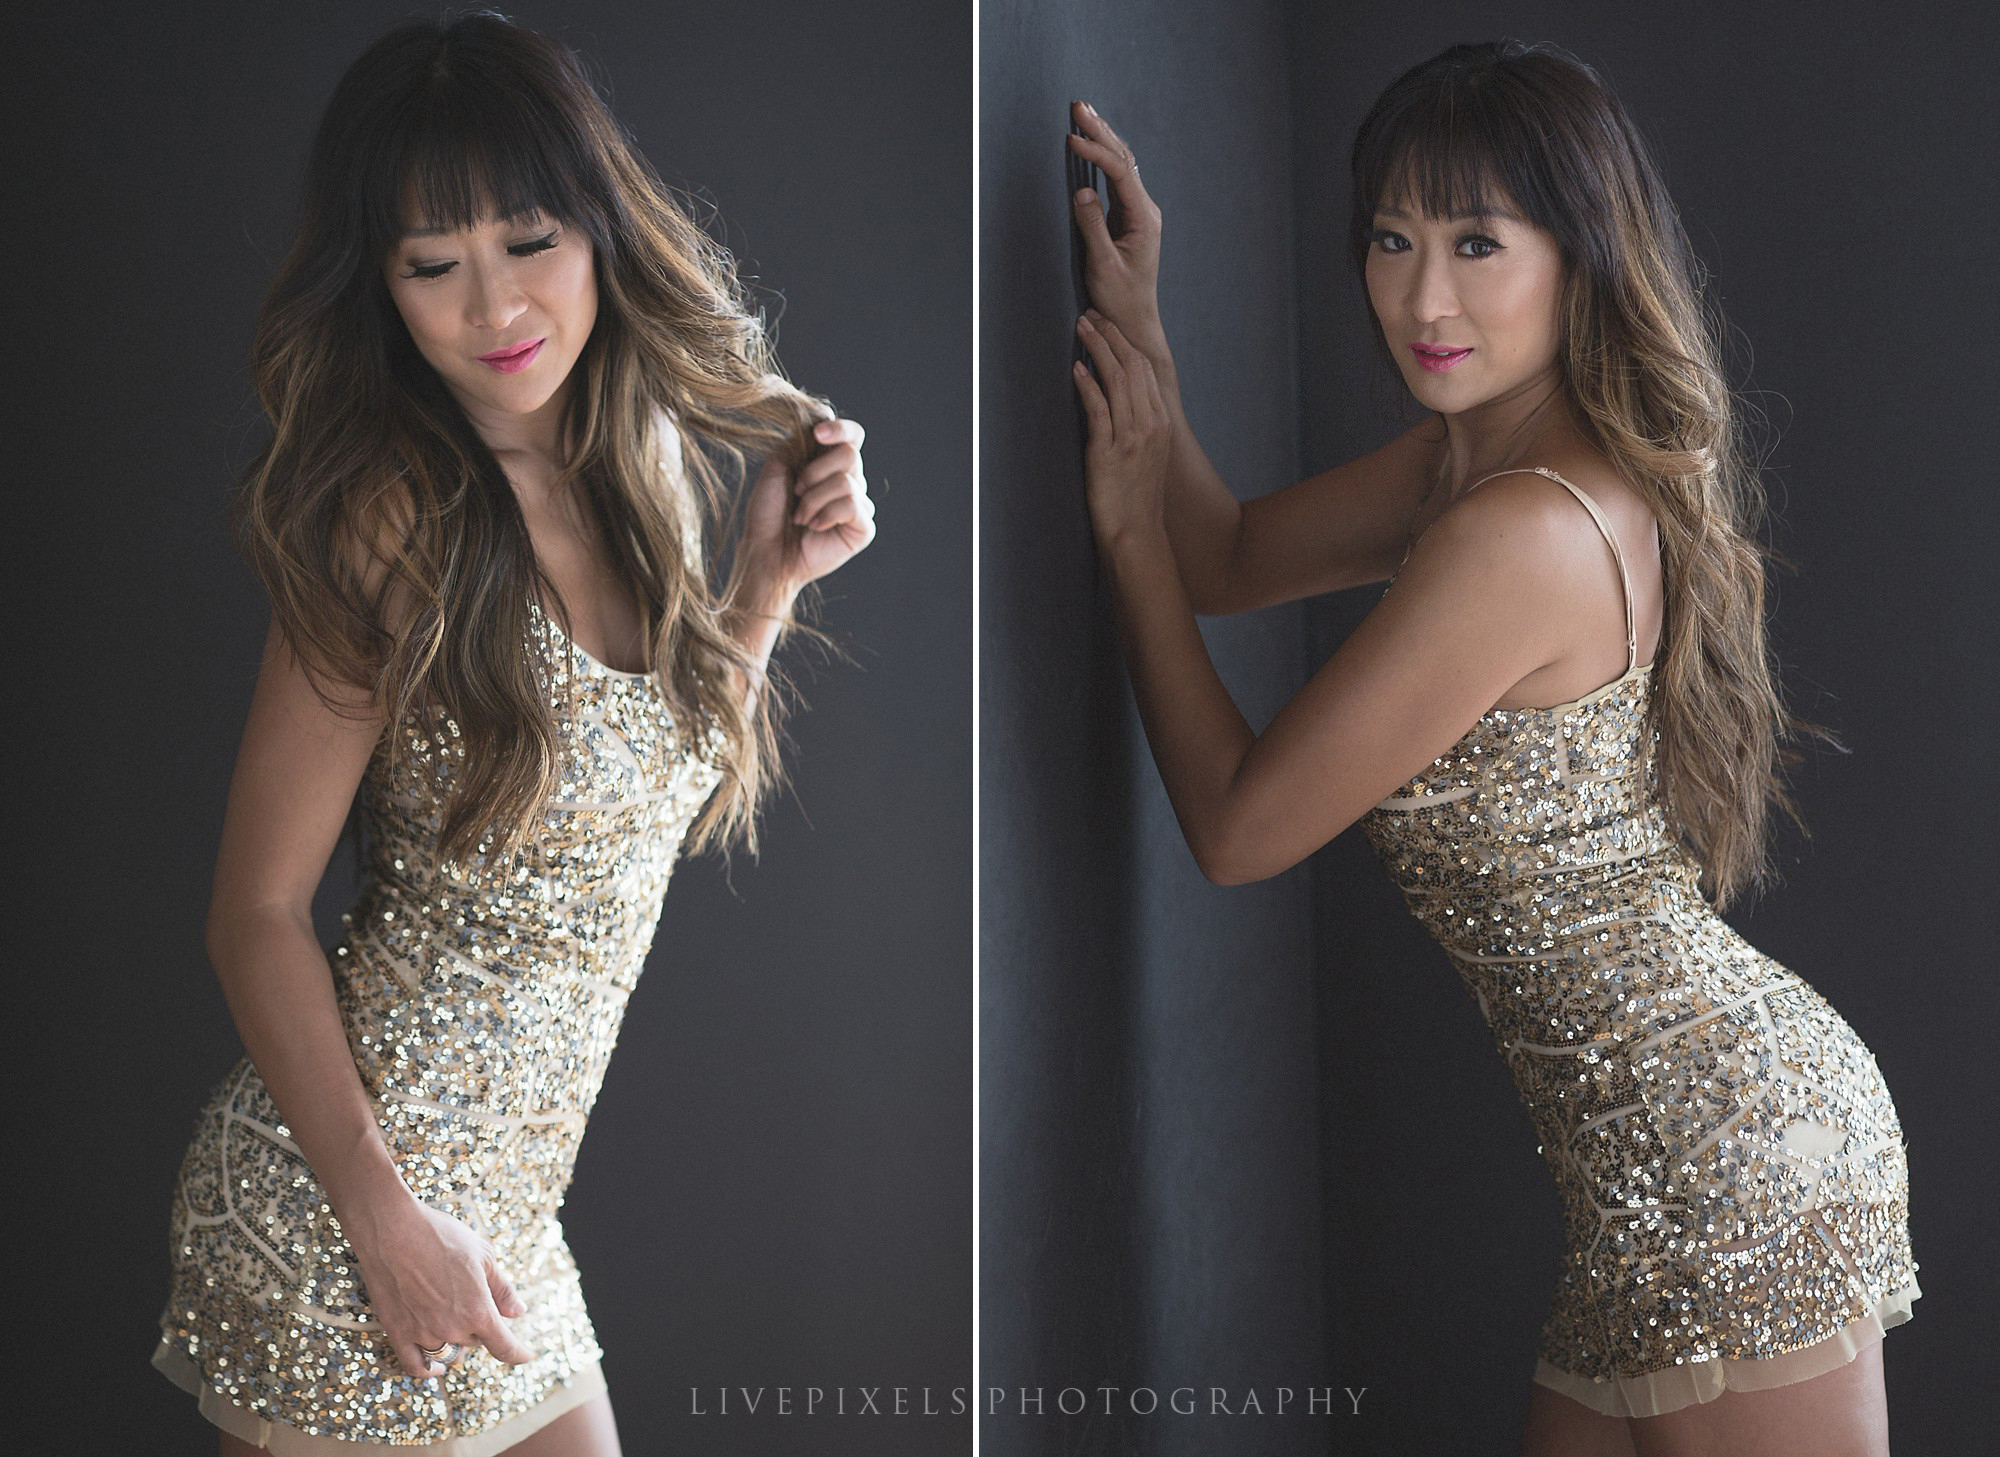 Sexy Portrait of a Girl in a Golden Dress, beauty portrait, glamour portrait in Toronto - Livepixels Photography, Toronto / livepixelsphotography.com